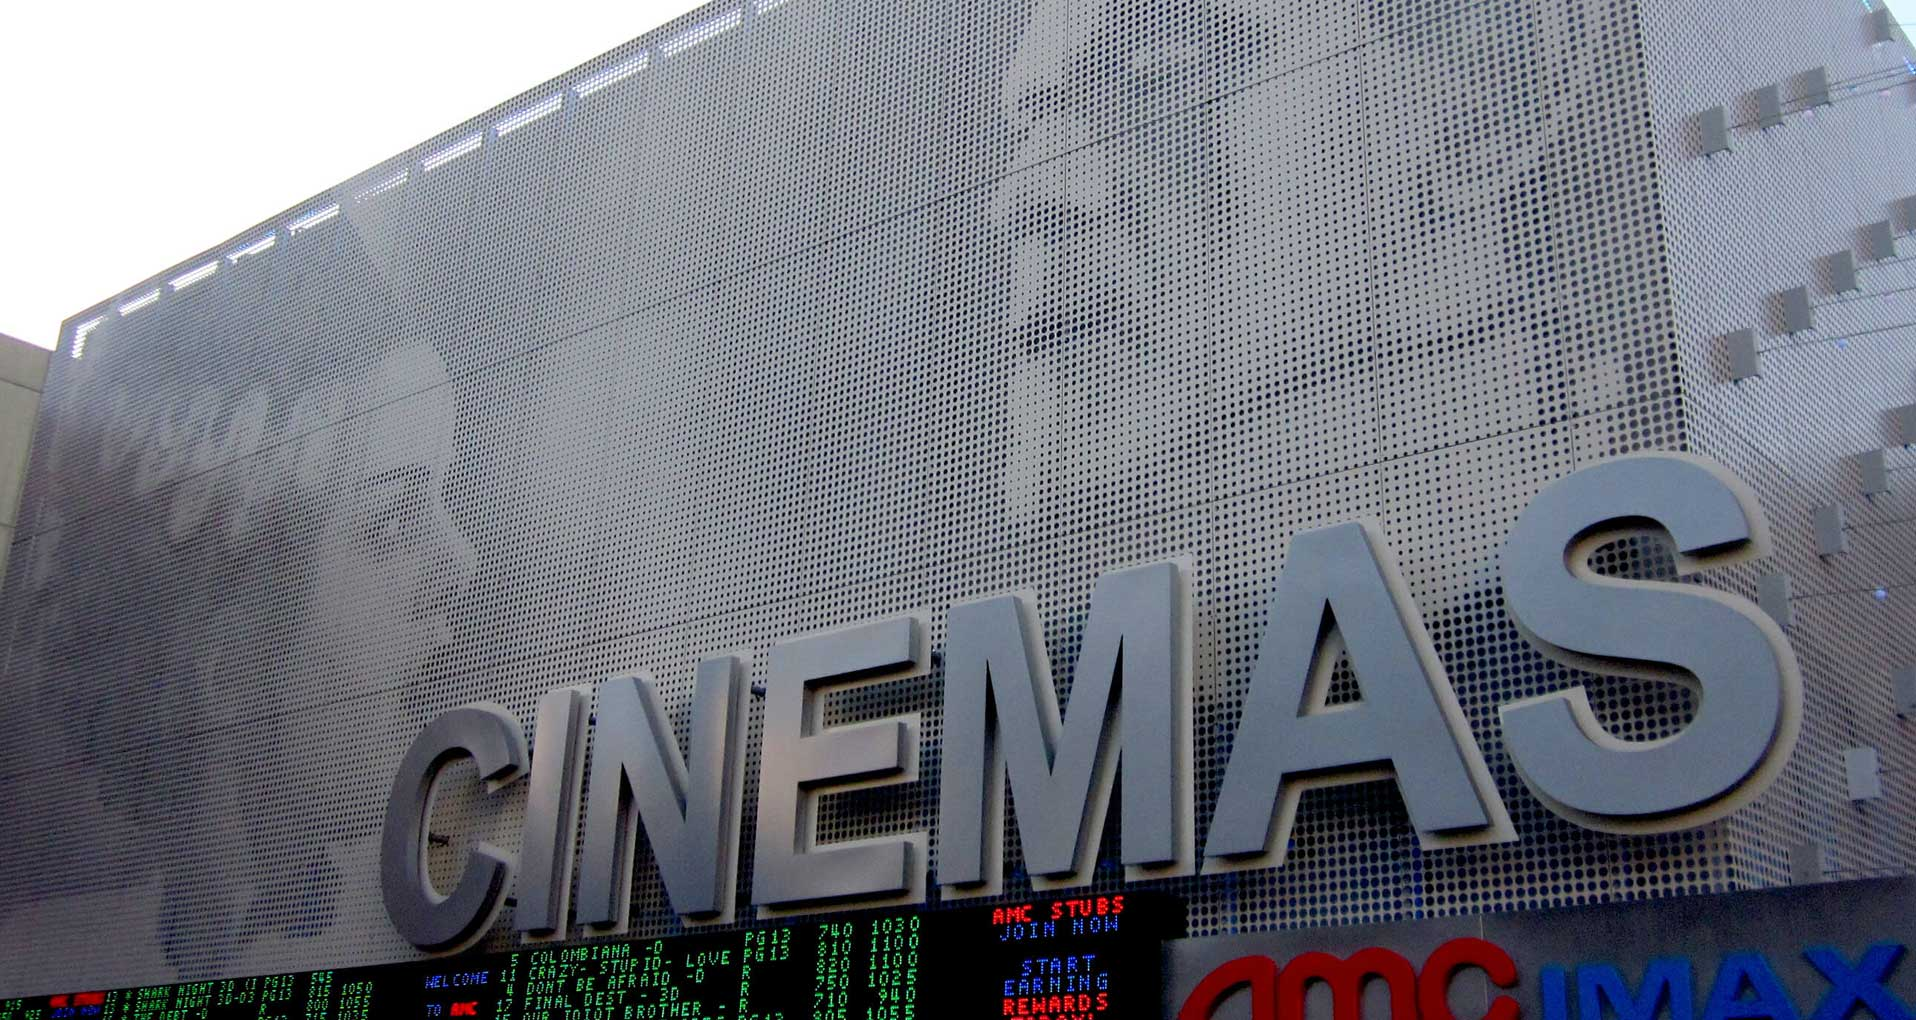 Perforated Metal Wall Cladding At Cinema